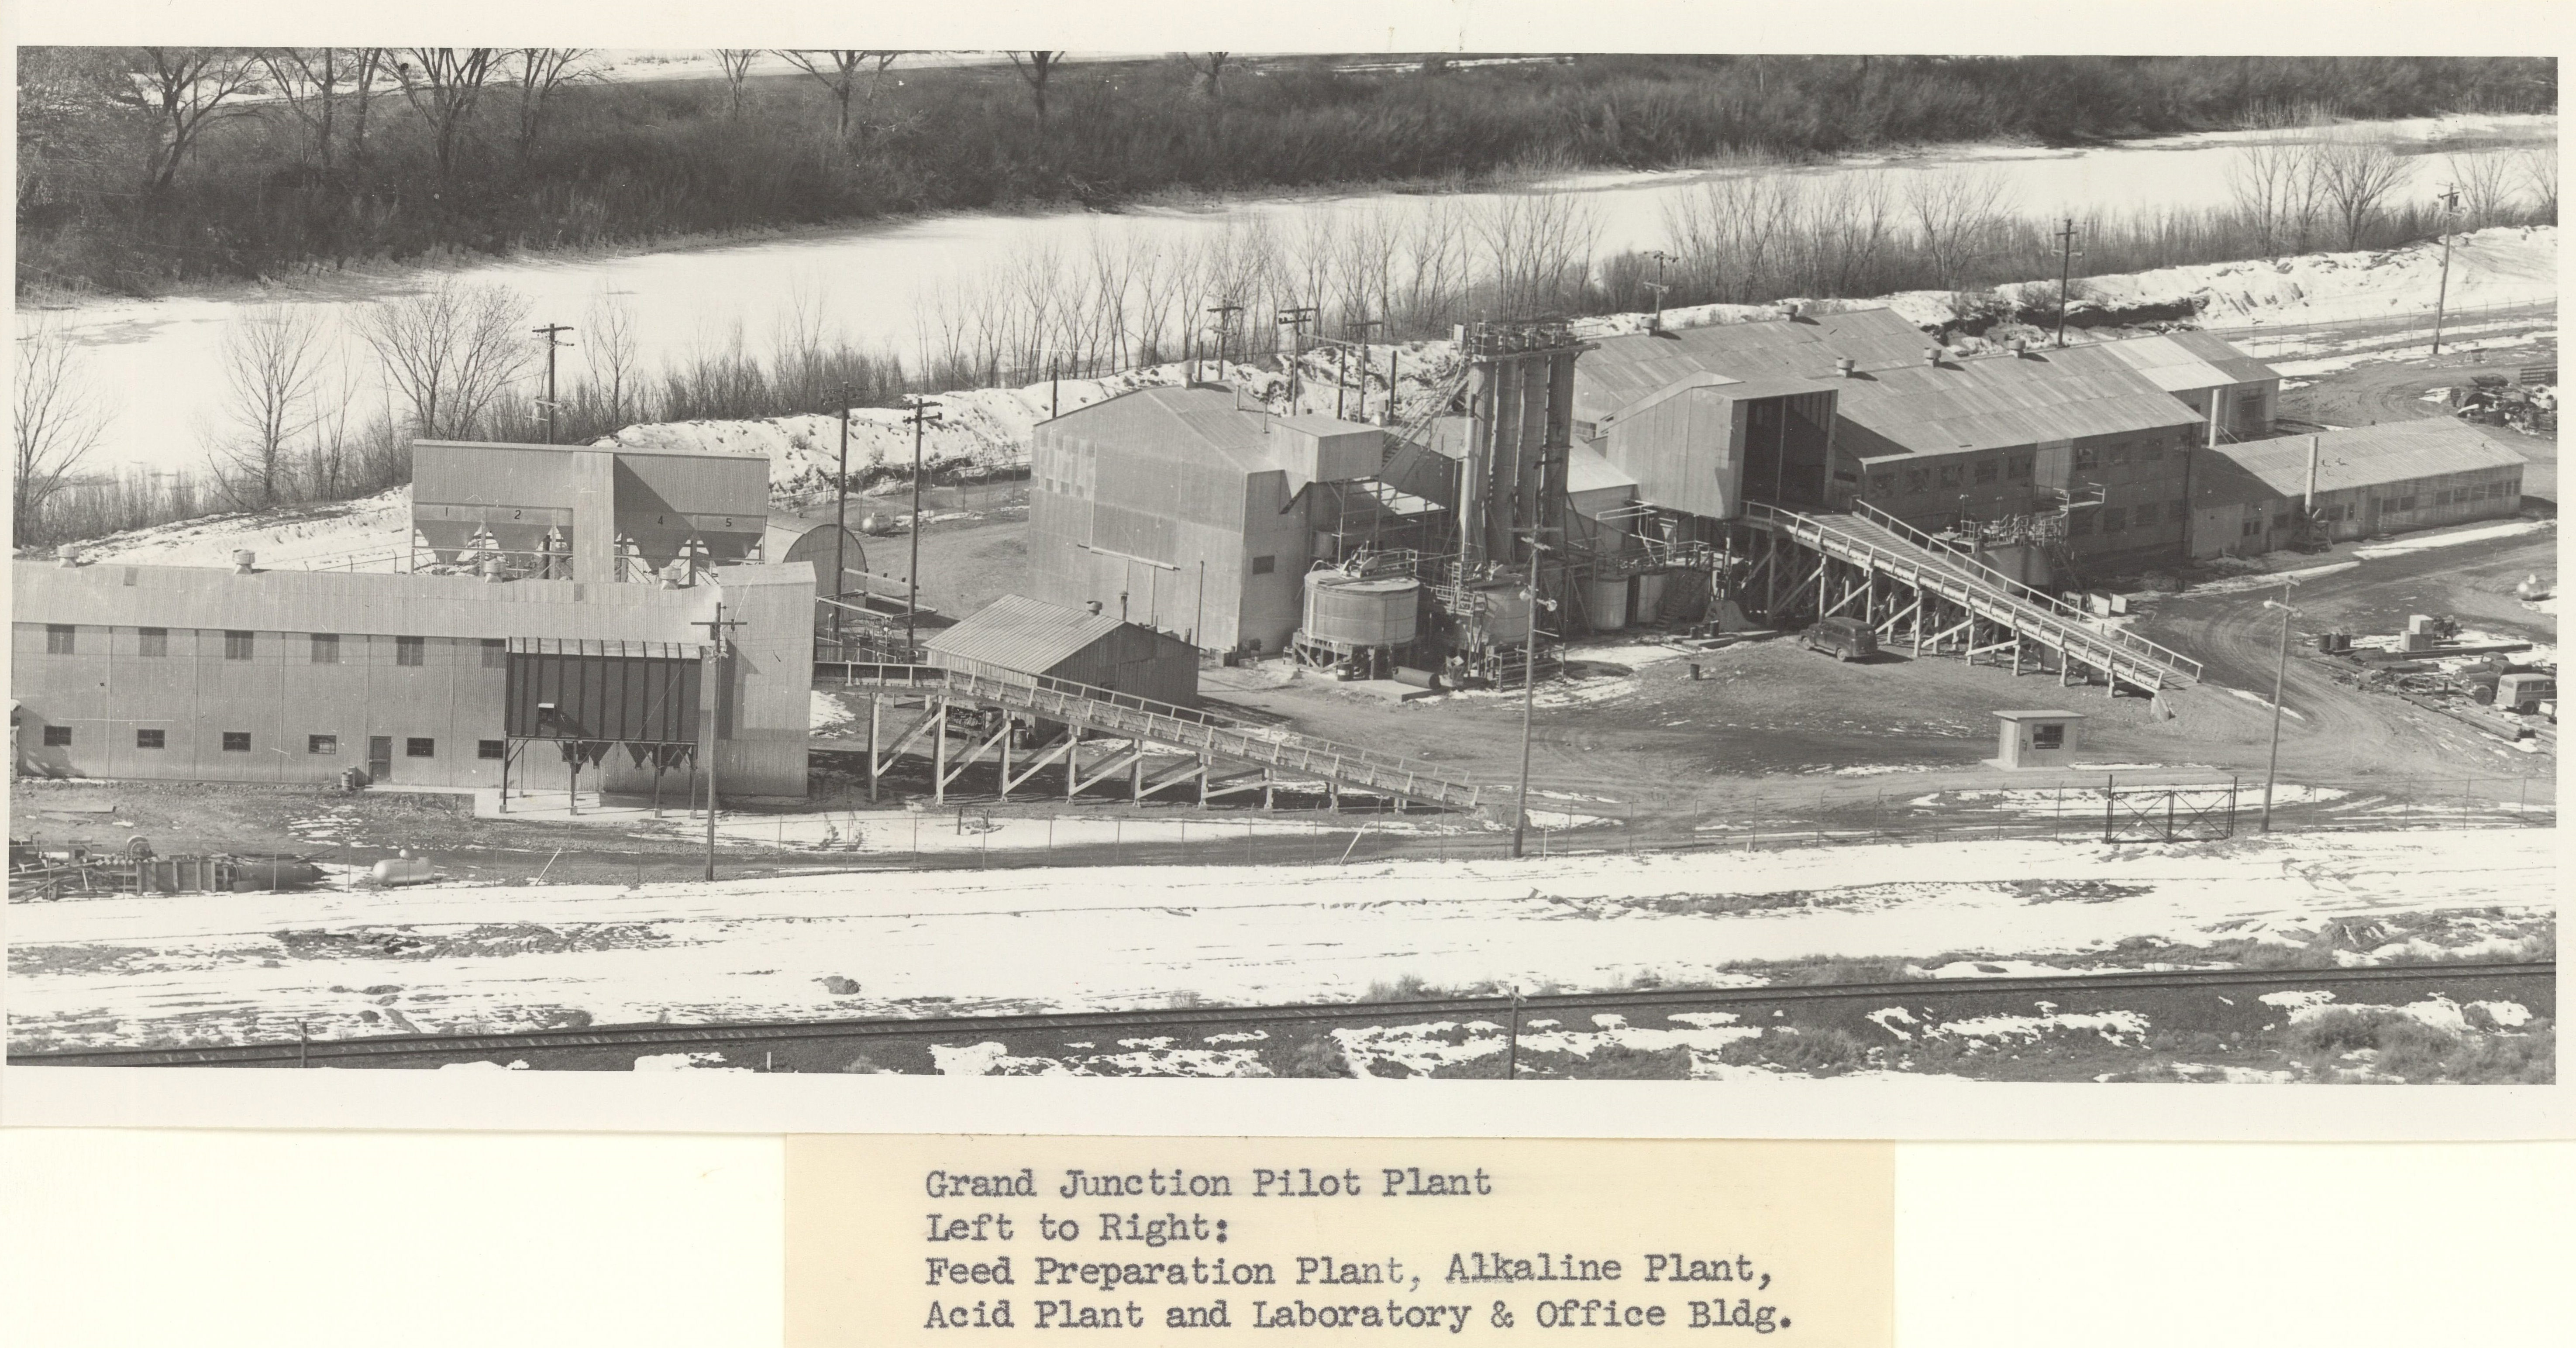 Black and white image of industrial facility constructed from corrugated metal with a frozen, snow-covered river near the top of the frame and a railroad track in the foreground, surrounded by patchy snow. A hand-typed caption reads: Grand Junction Pilot Plant. Left to right: Feed Preparation Plant, Alkaline Plant, Acid Plant and Laboratory & Office Bldg.